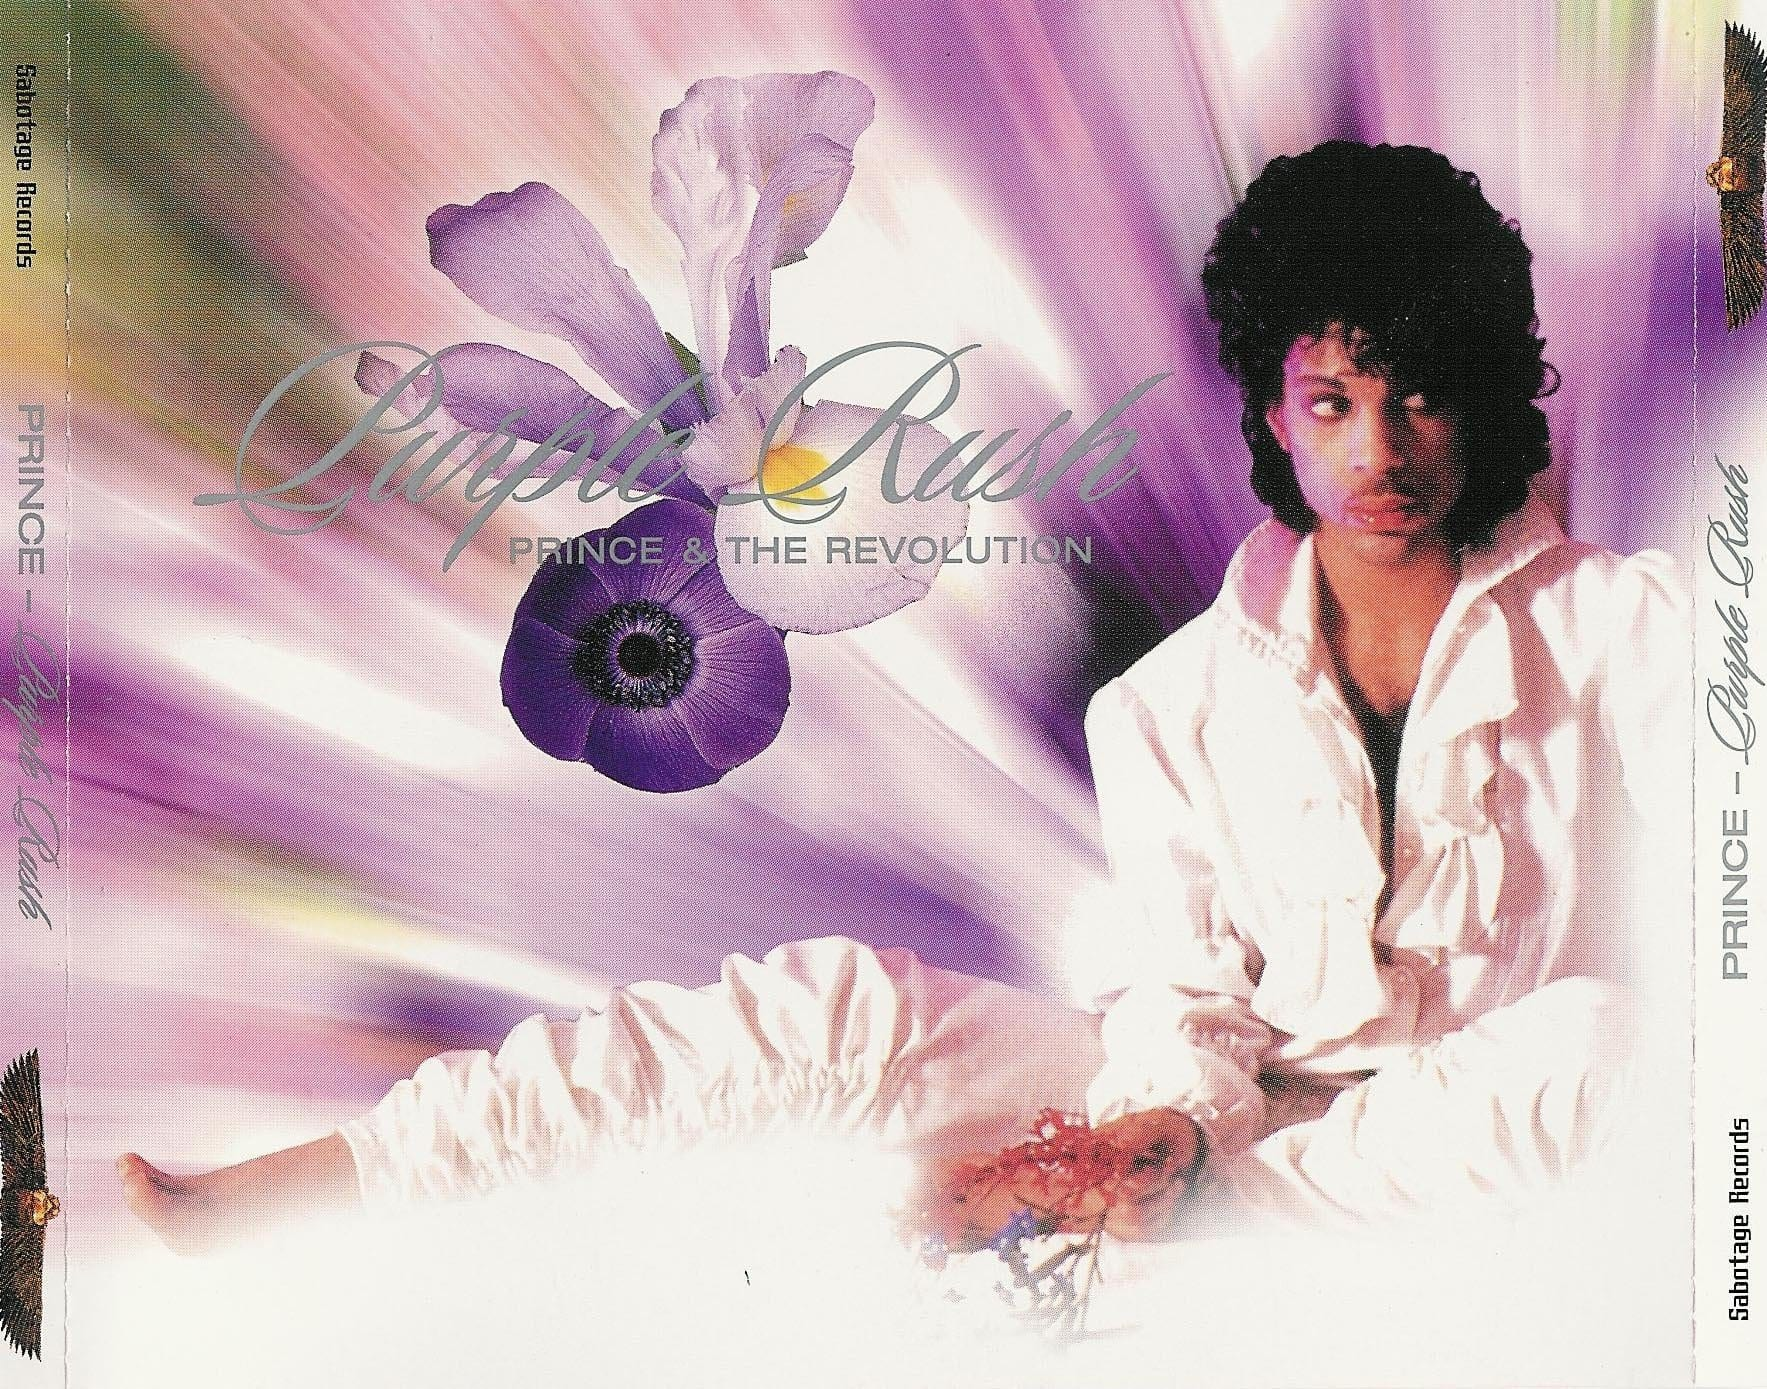 Prince And The Revolution - Purple Rush: Rehearsals & Live Shows 1983-85 (2002) 6 CD SET 9